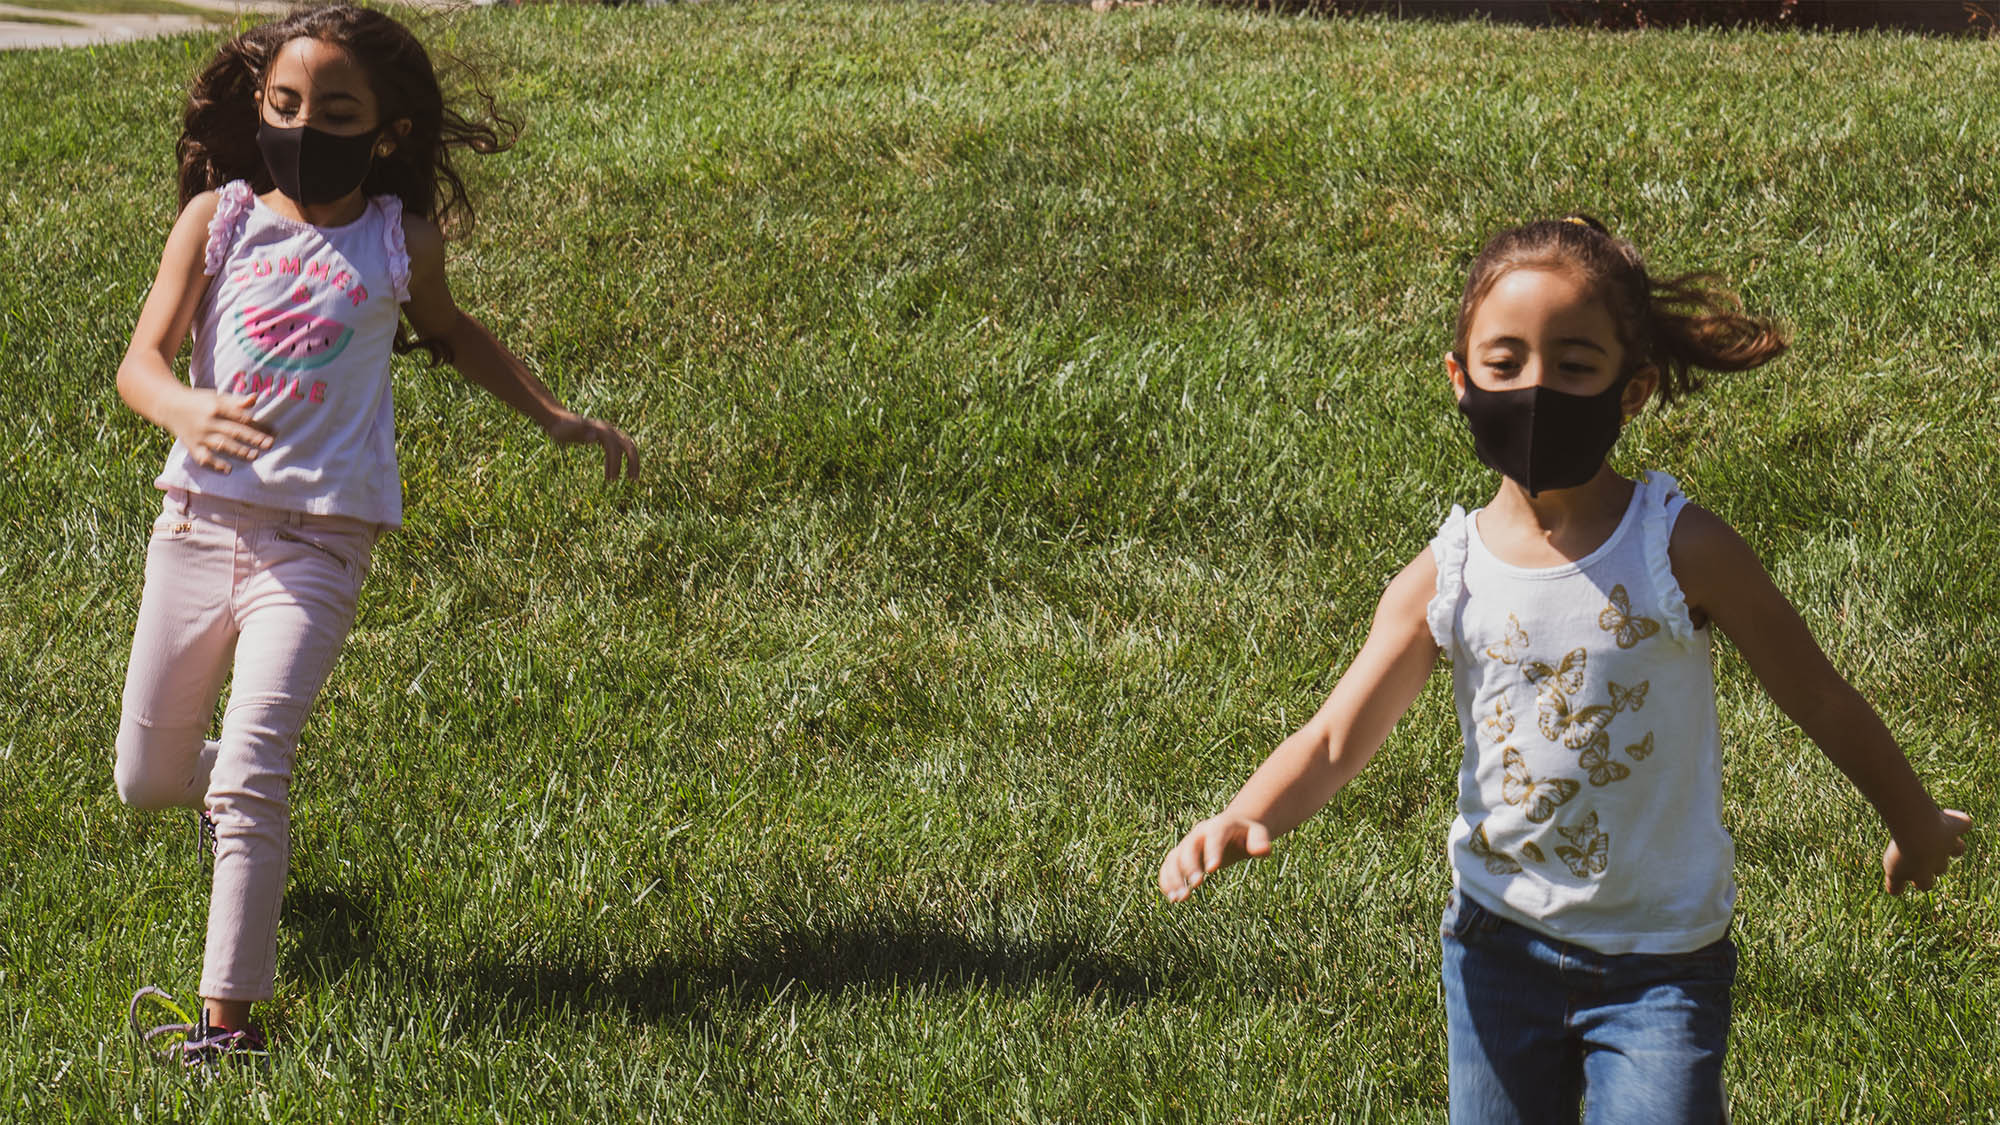 Two masked girls running in grass